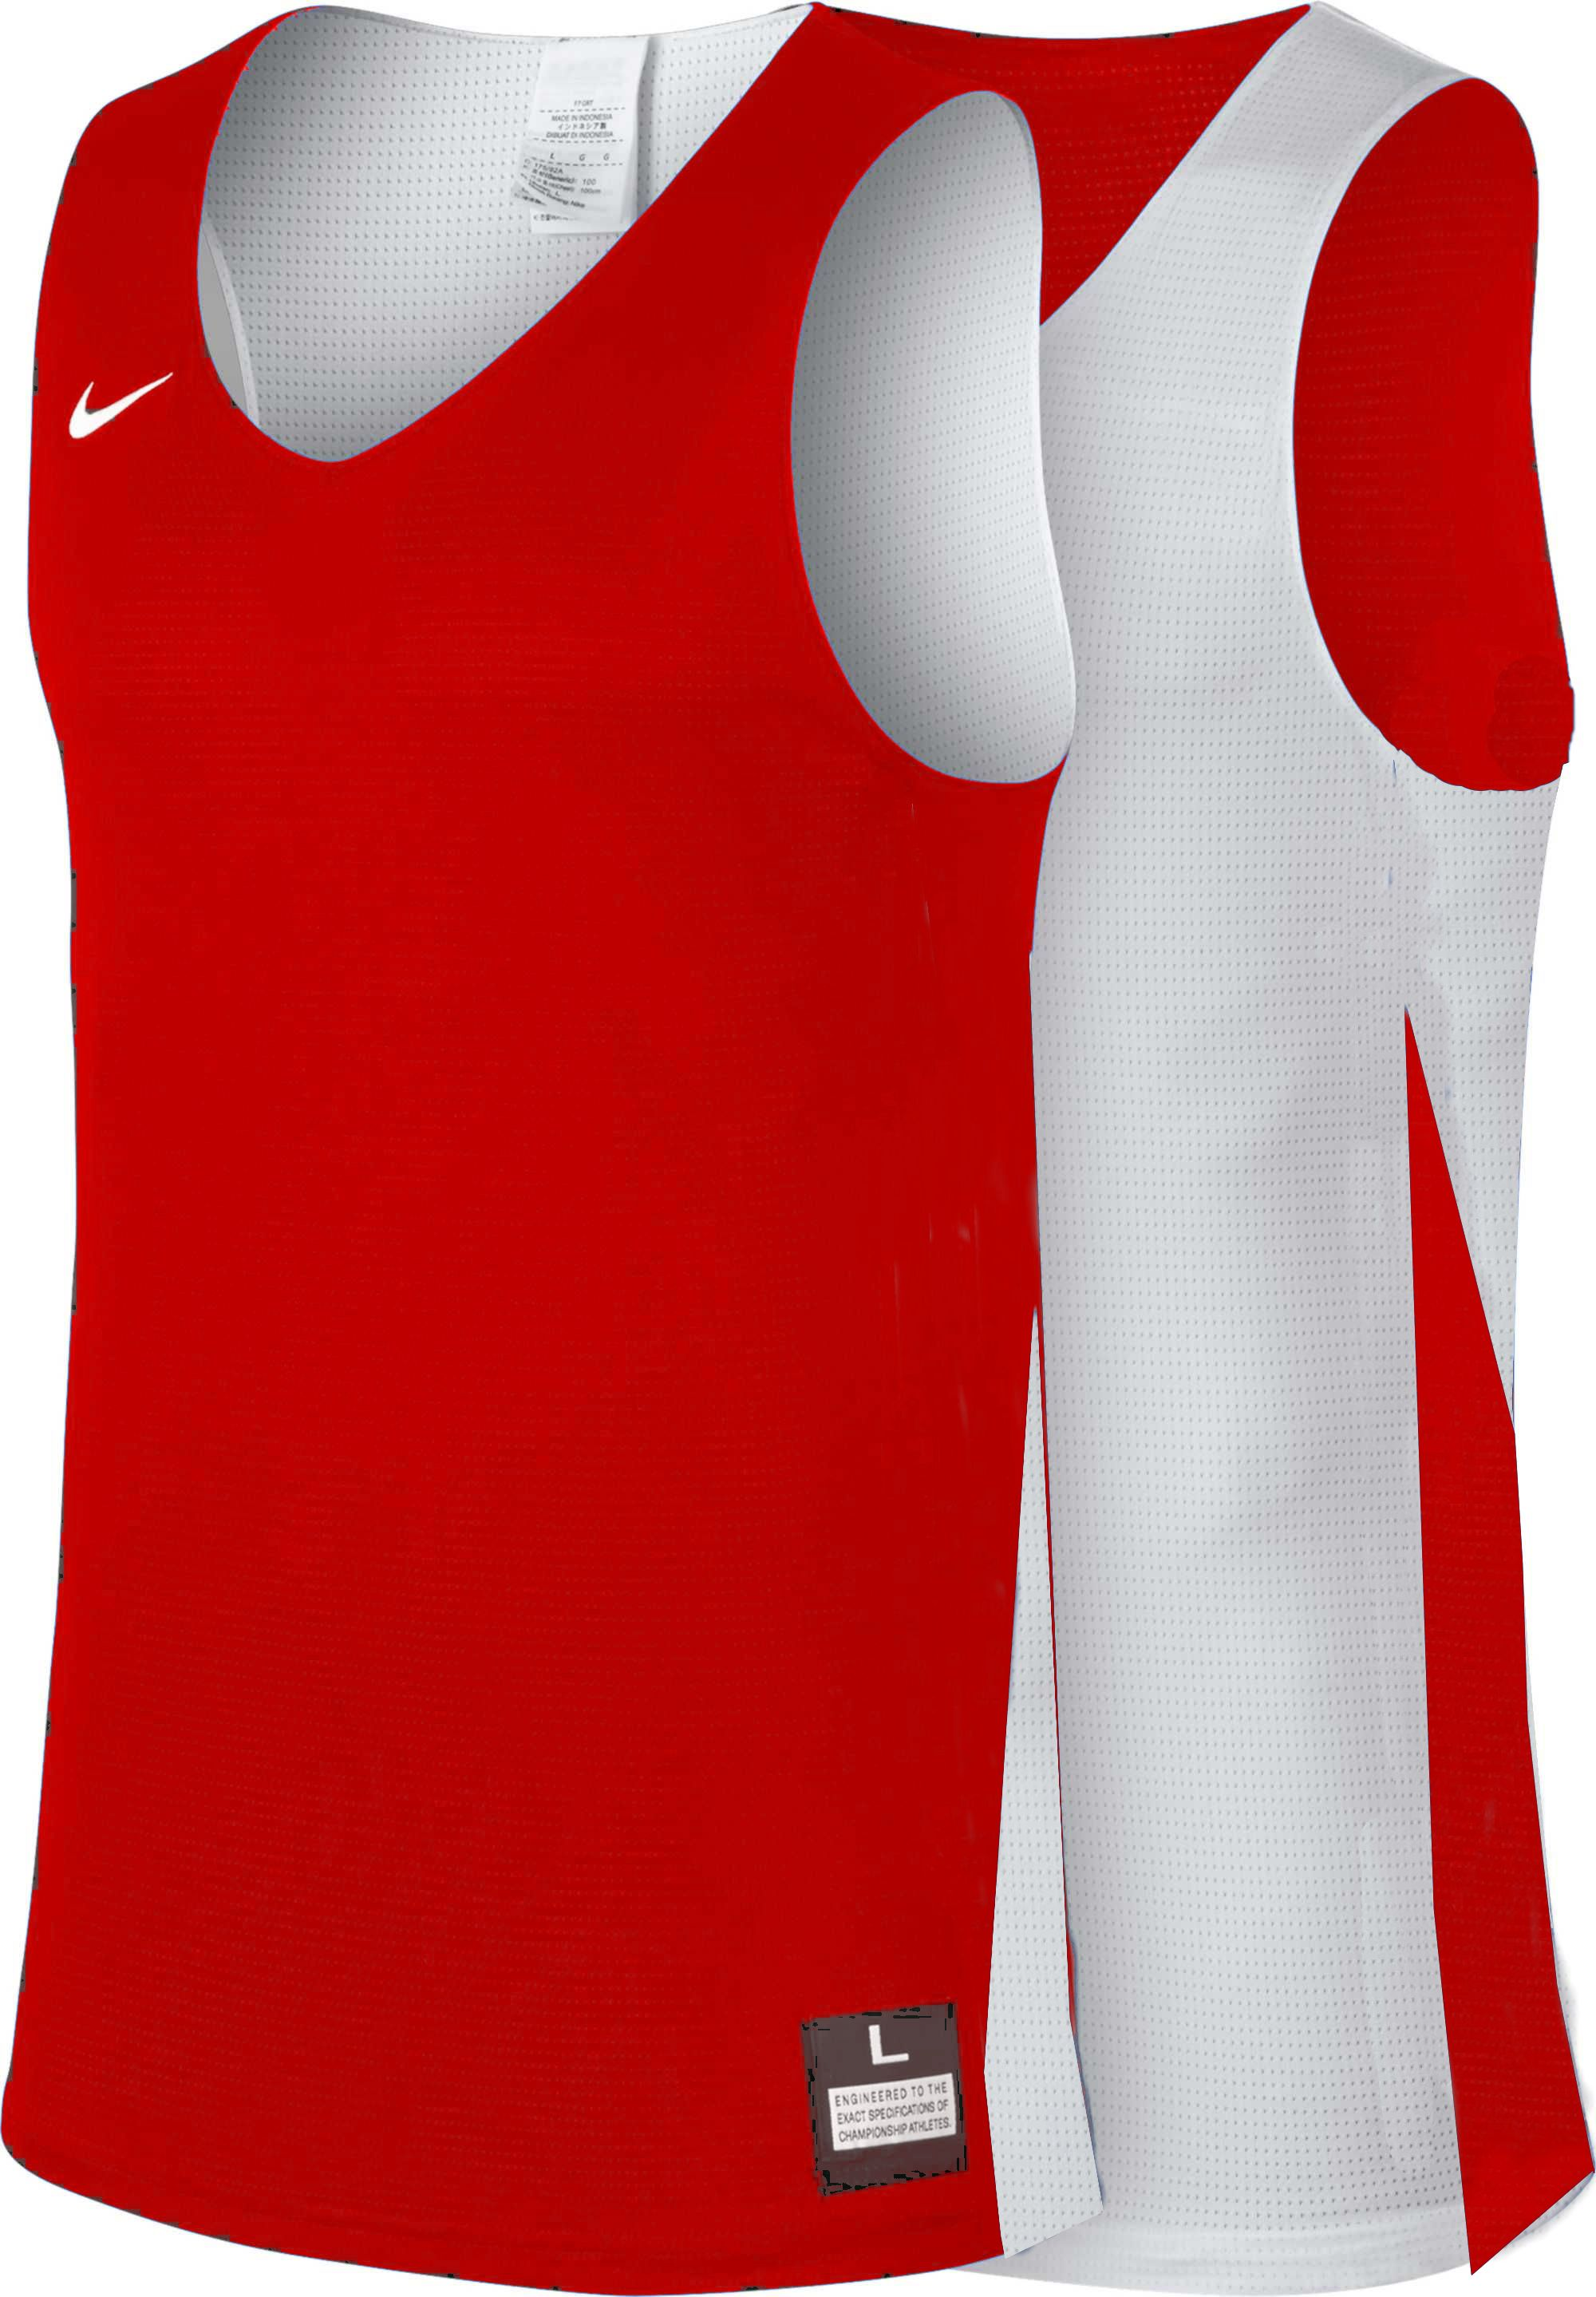 Teamwear - Nike Women's Team Basketball Reversible Jersey - University Red/White - NK-NT0213-657